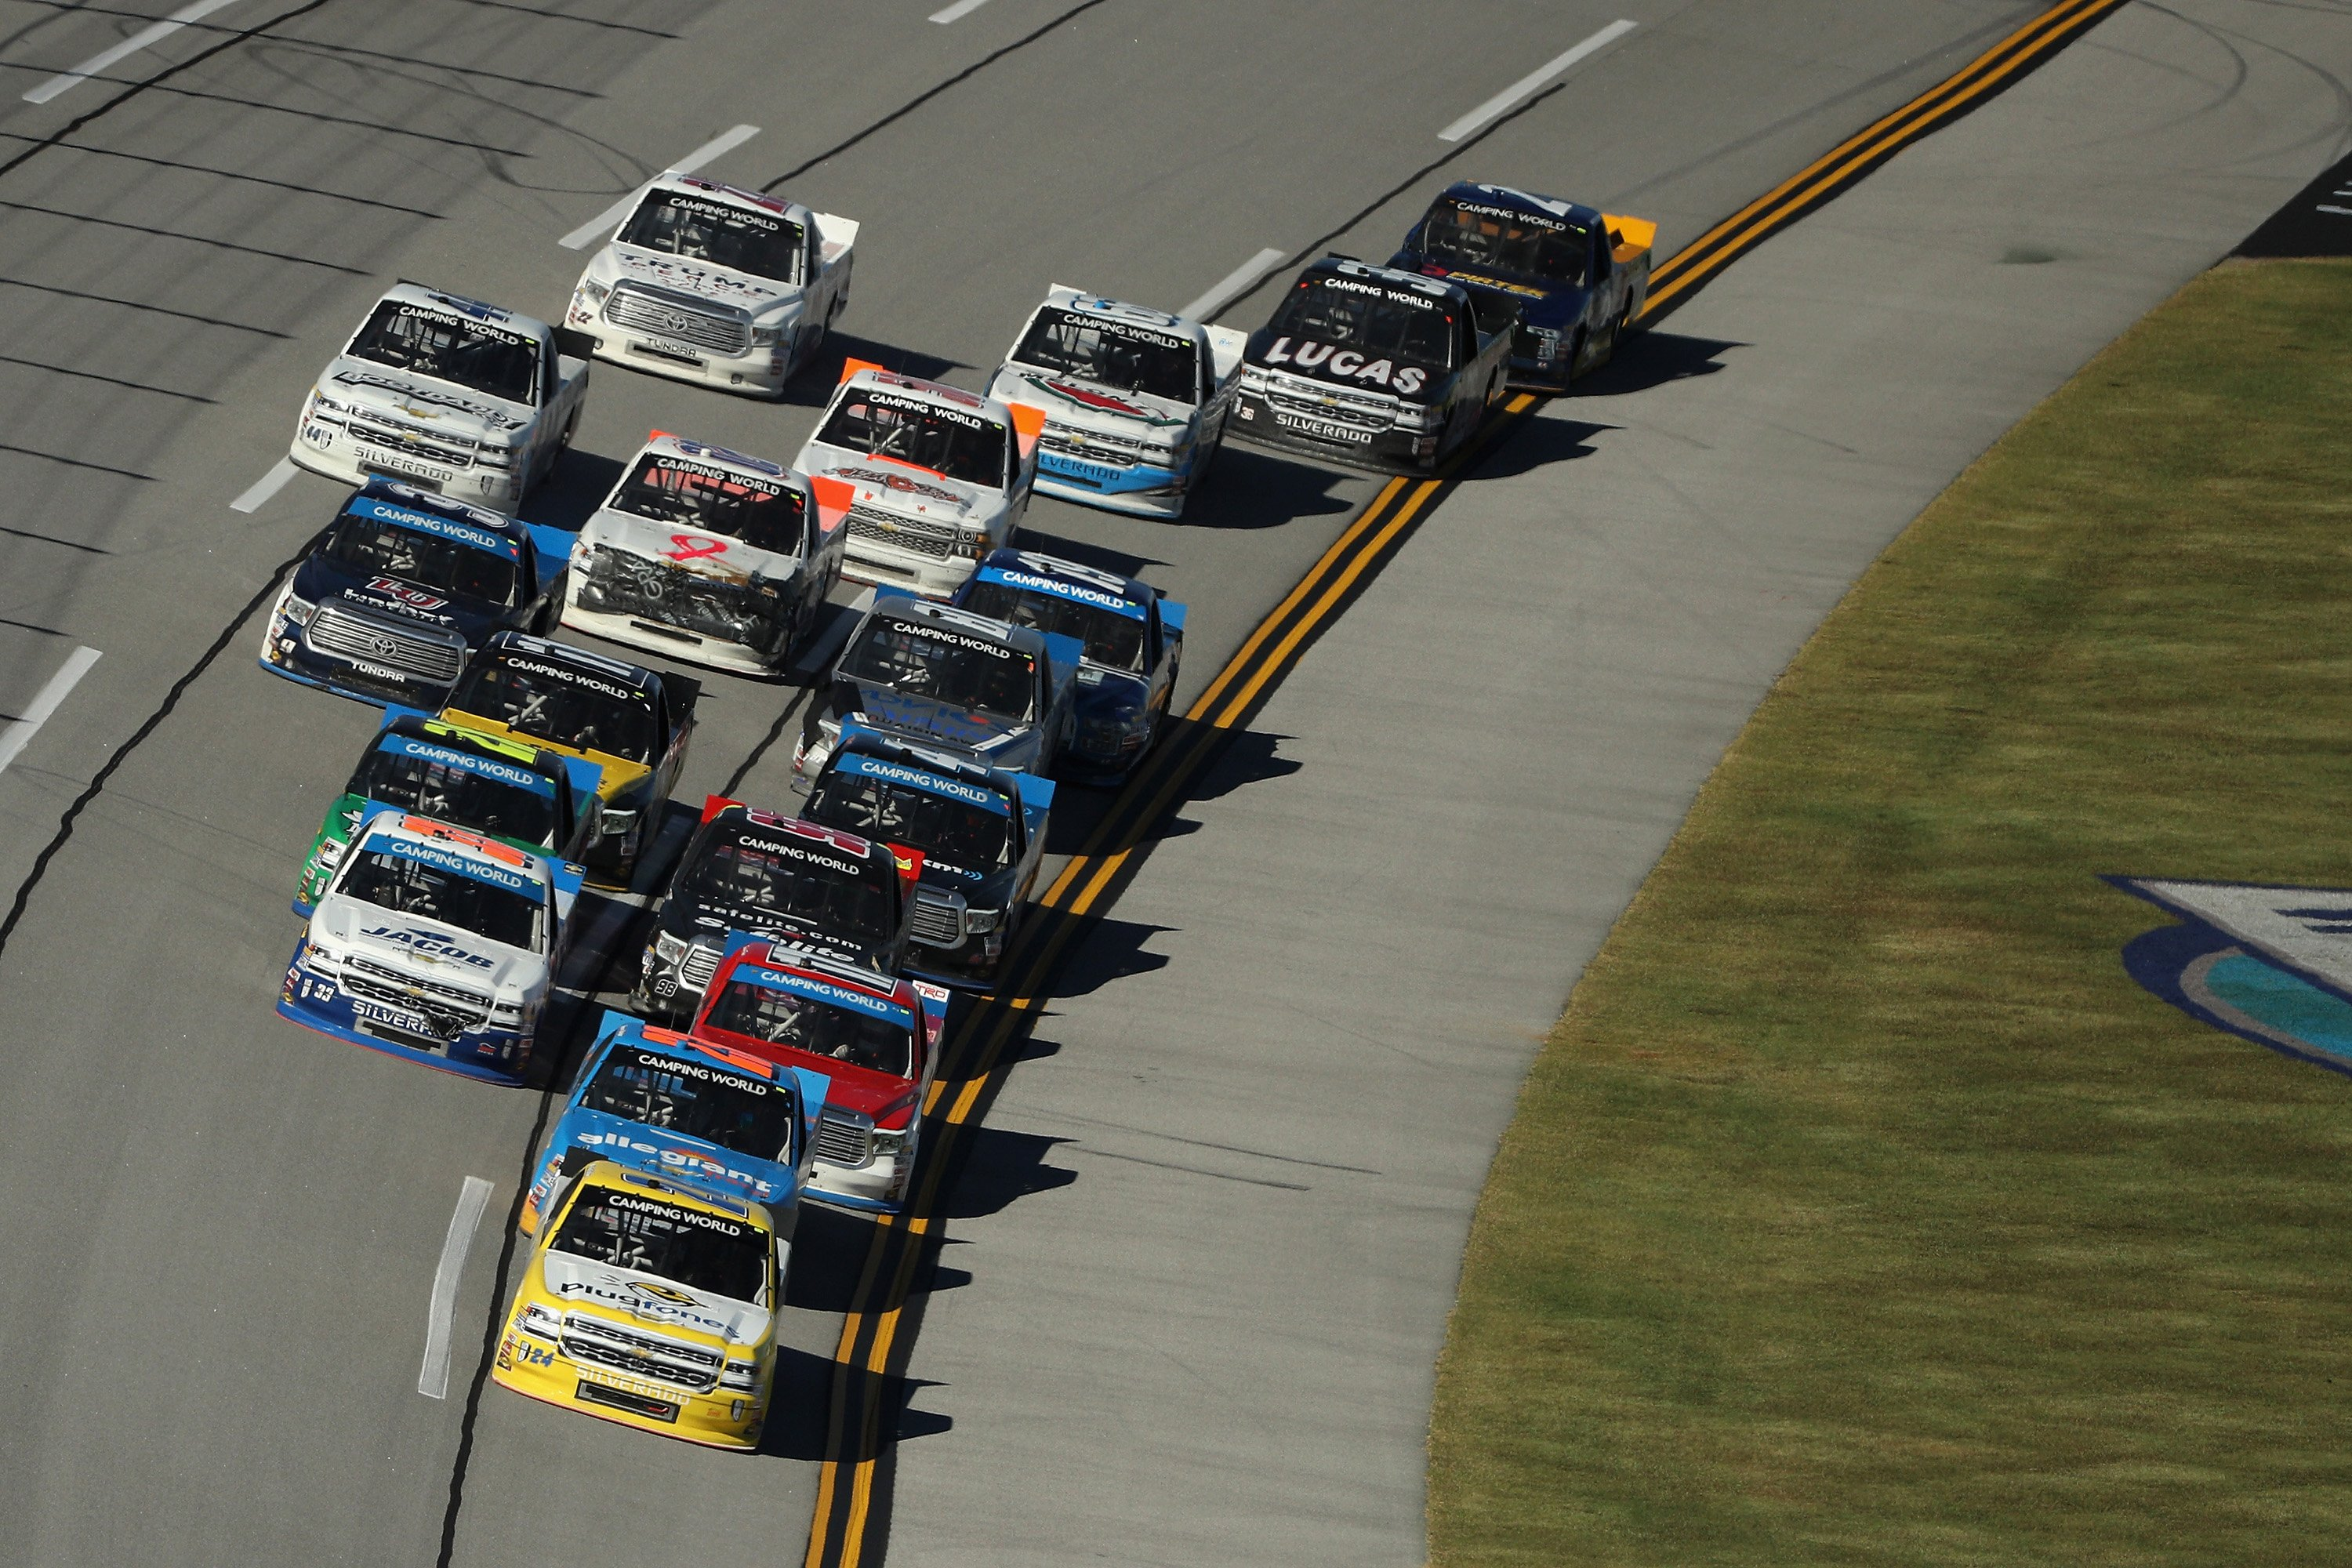 Almirola wins at Talladega further burying the championship hopes for Larson, Bowman